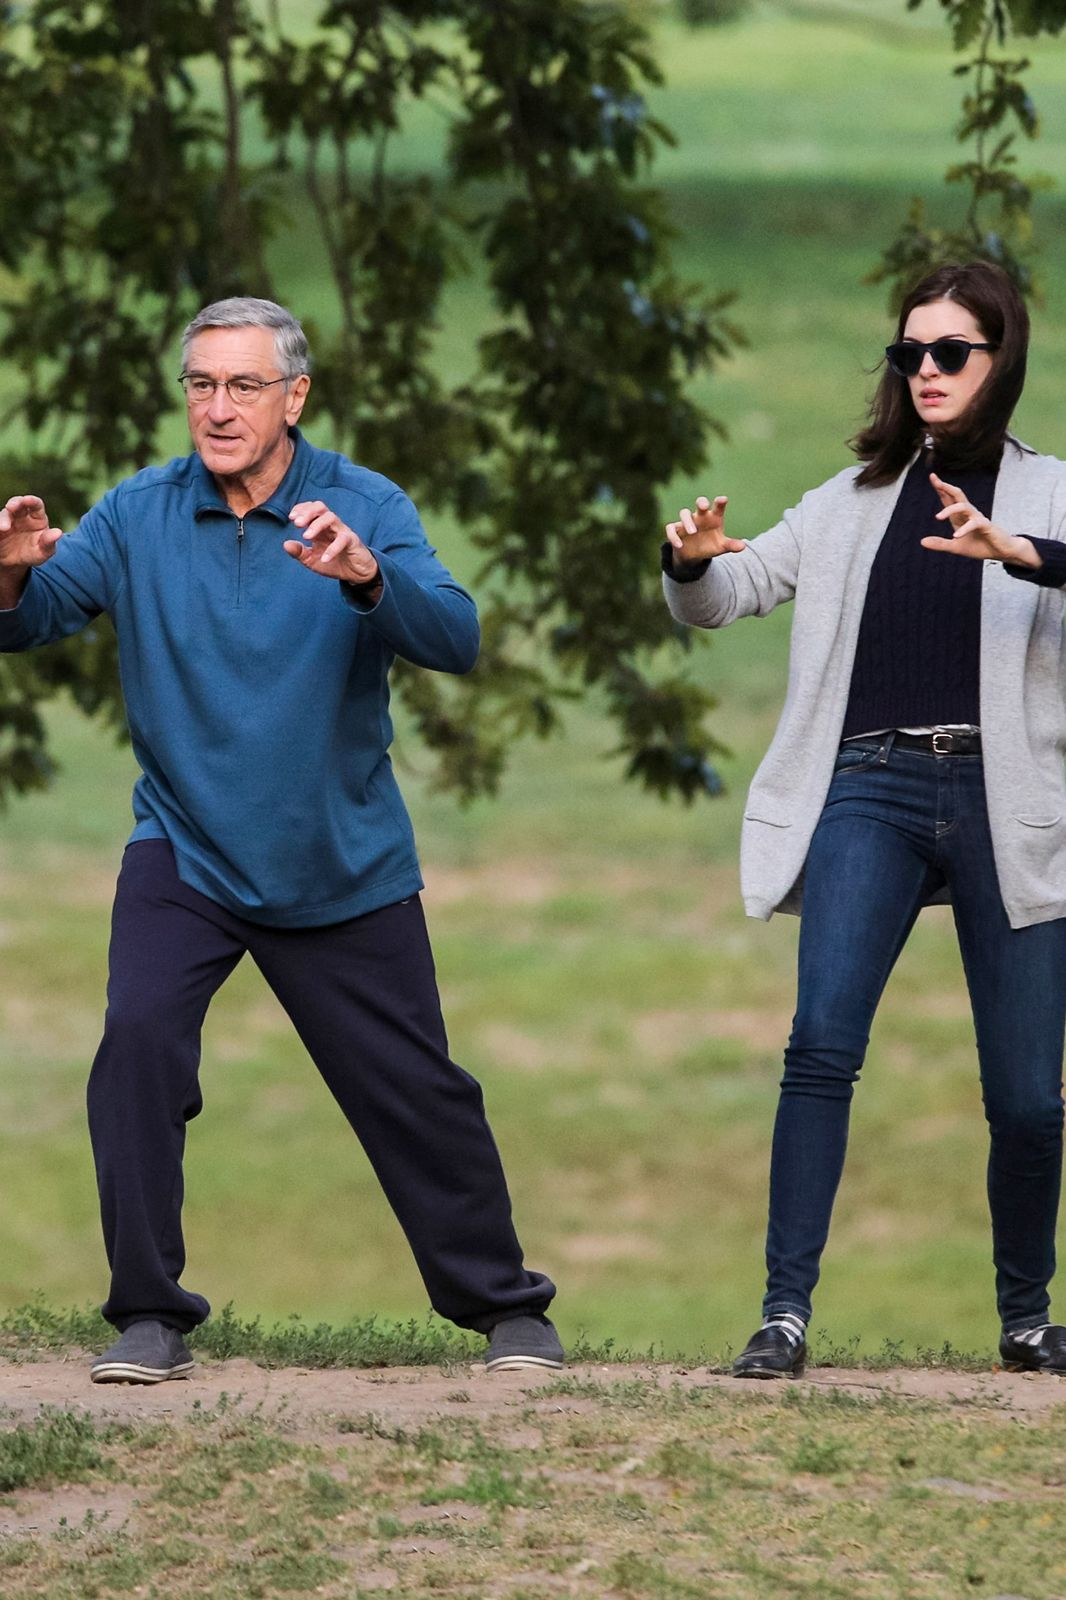 The Intern Written and directed by Nancy Meyers — see: It's Complicated, Something's Gotta Give, The Holiday — The Intern stars Anne Hathaway as the founder of a fashion start-up who hires a 70-year-old widower (Robert De Niro) as her intern. Consider our tickets already pre-ordered. Hits theaters on September 25, 2015.